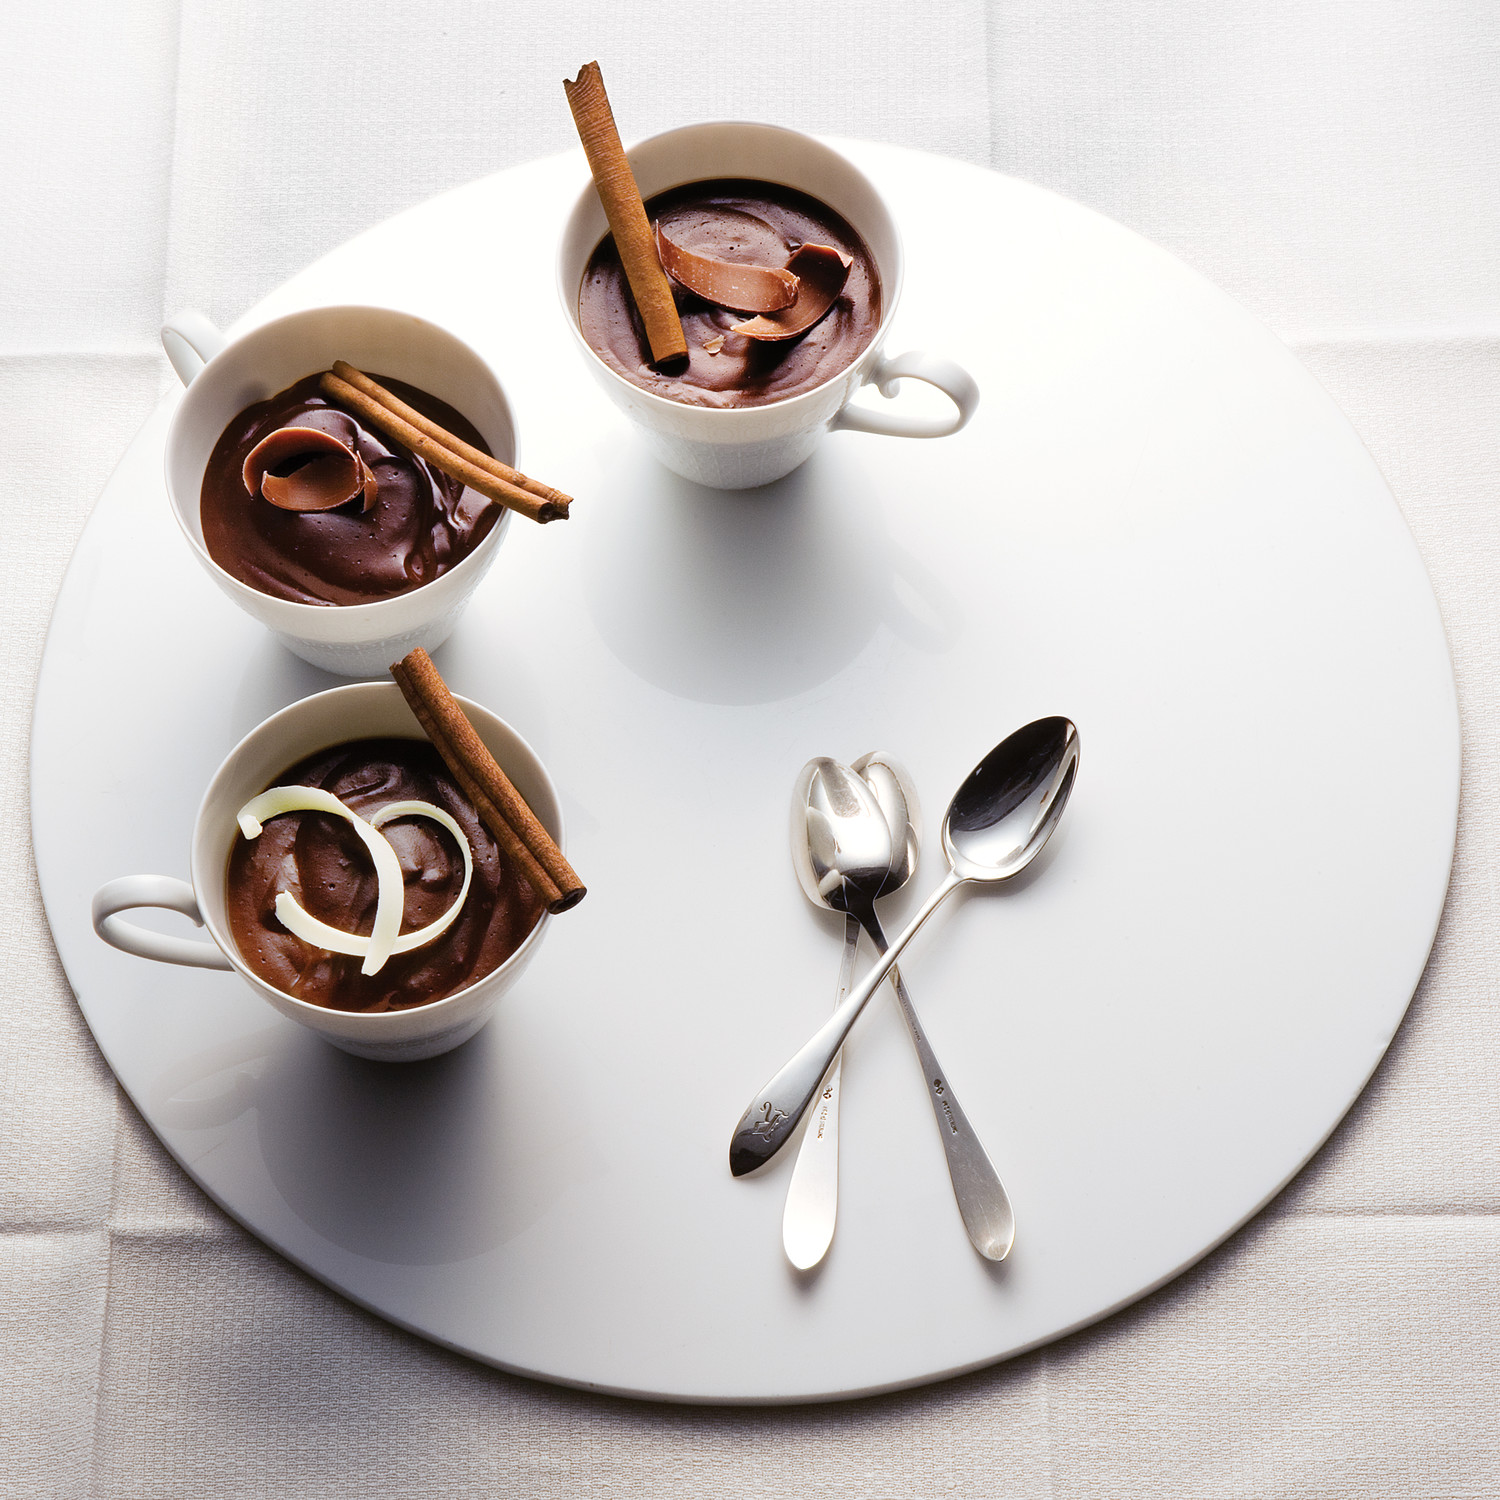 Easy quick chocolate pudding recipes